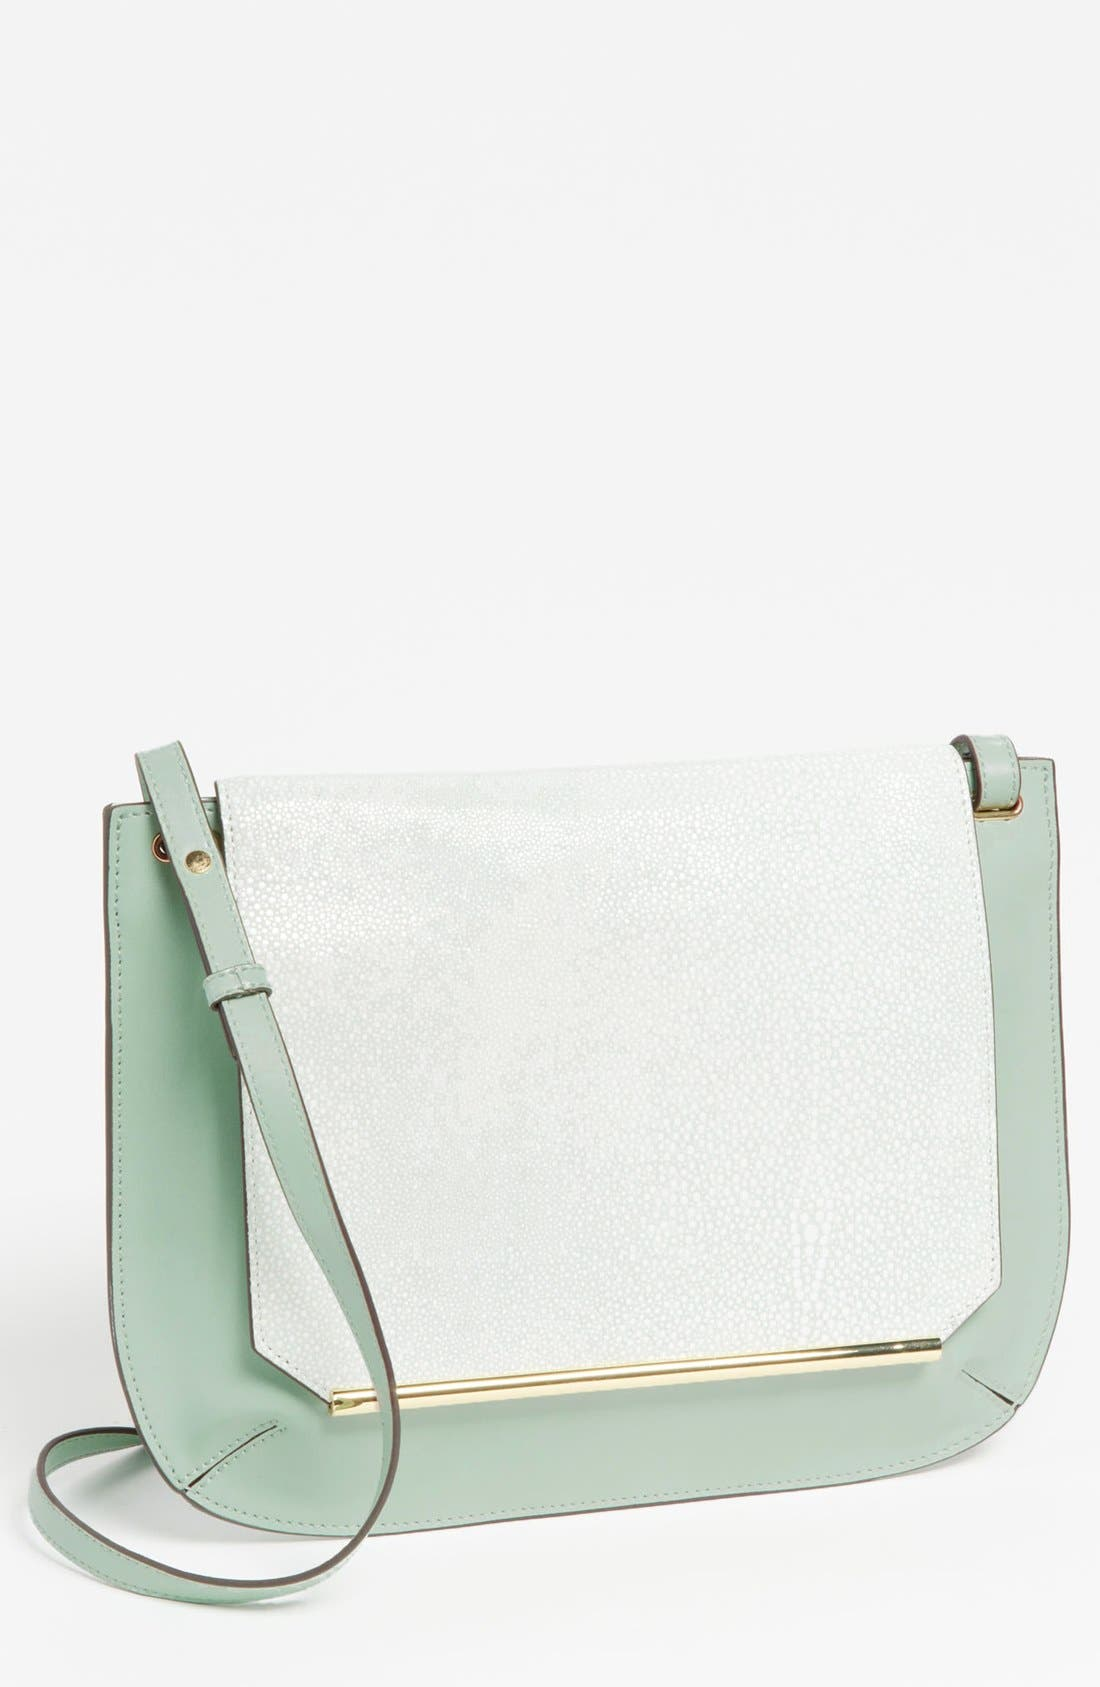 Alternate Image 1 Selected - Vince Camuto 'Sabin' Crossbody Bag